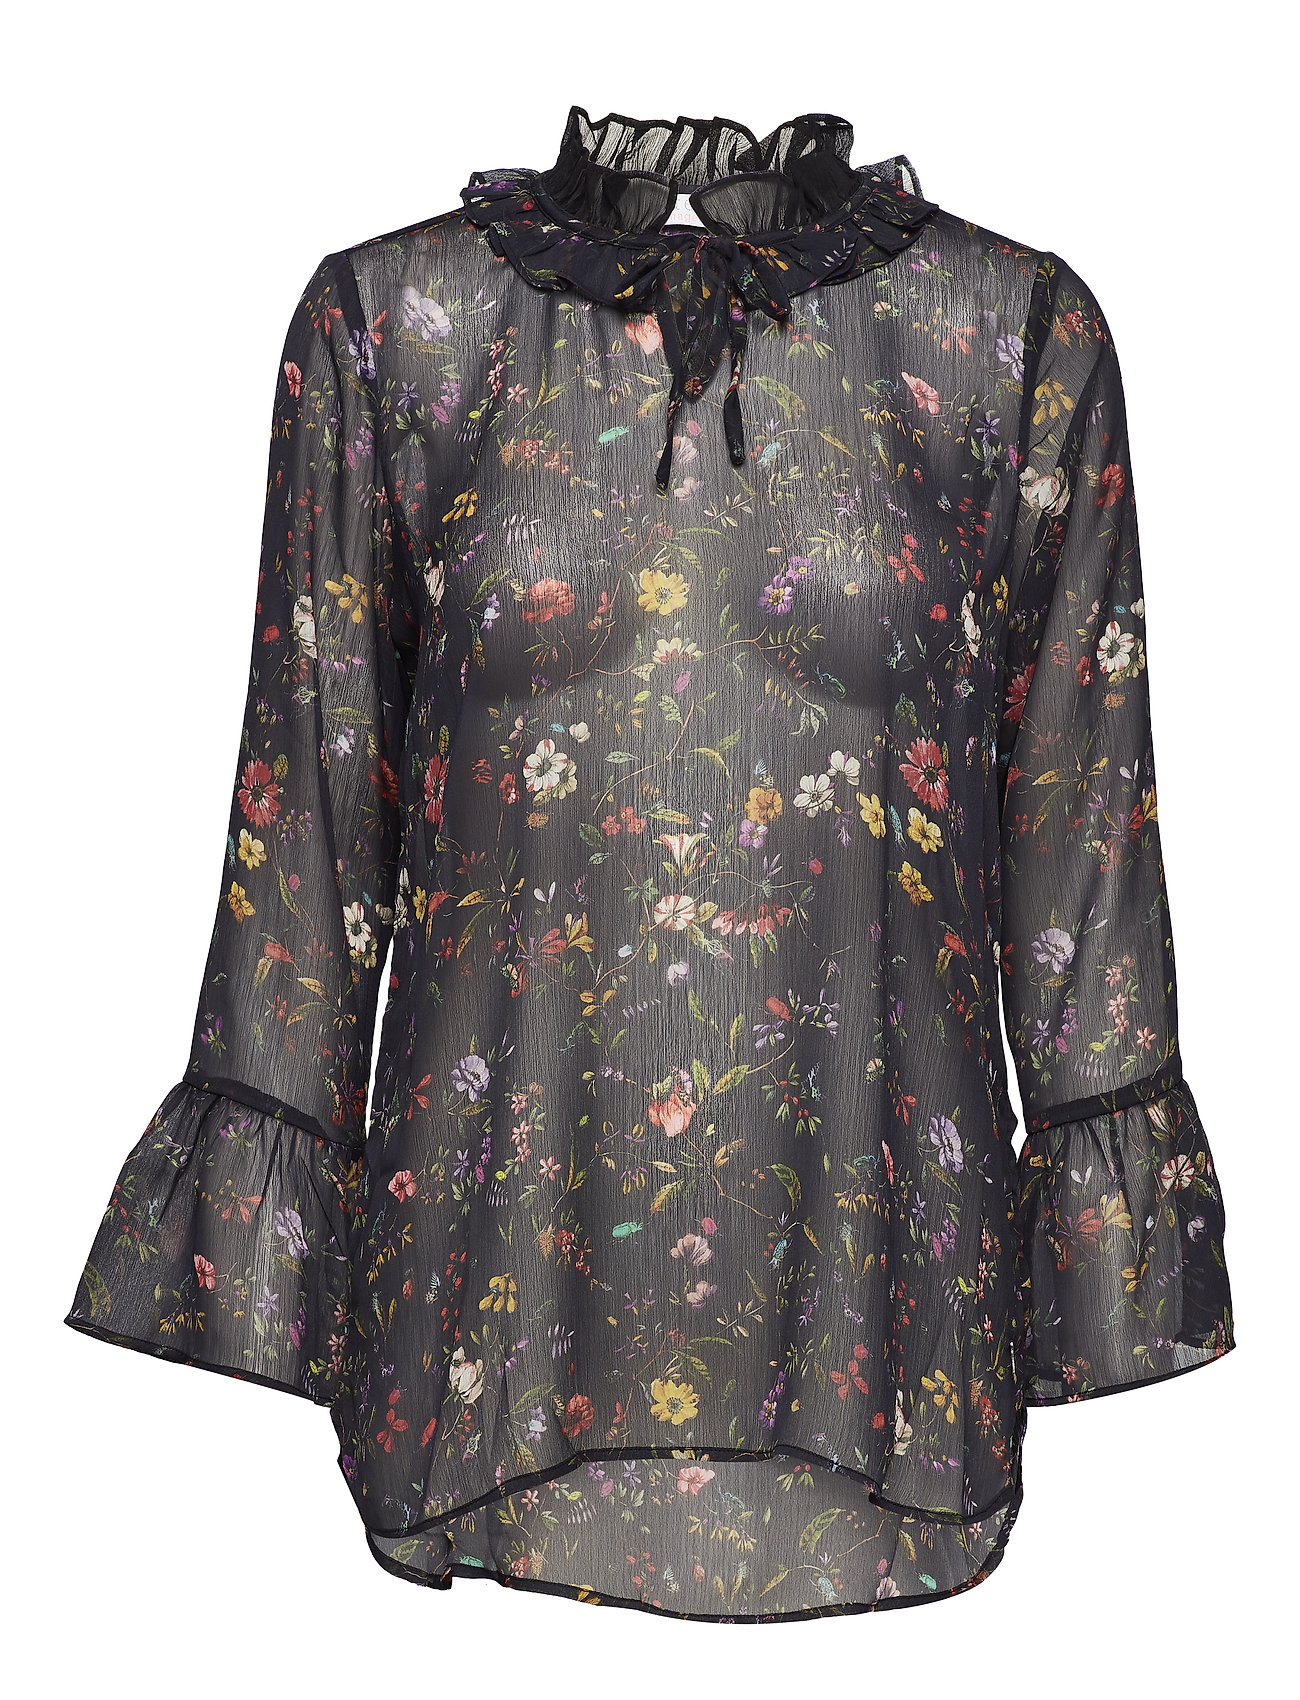 Coster Copenhagen Top in Botanical print w. ruffle neck and volant sleeves - BLACK